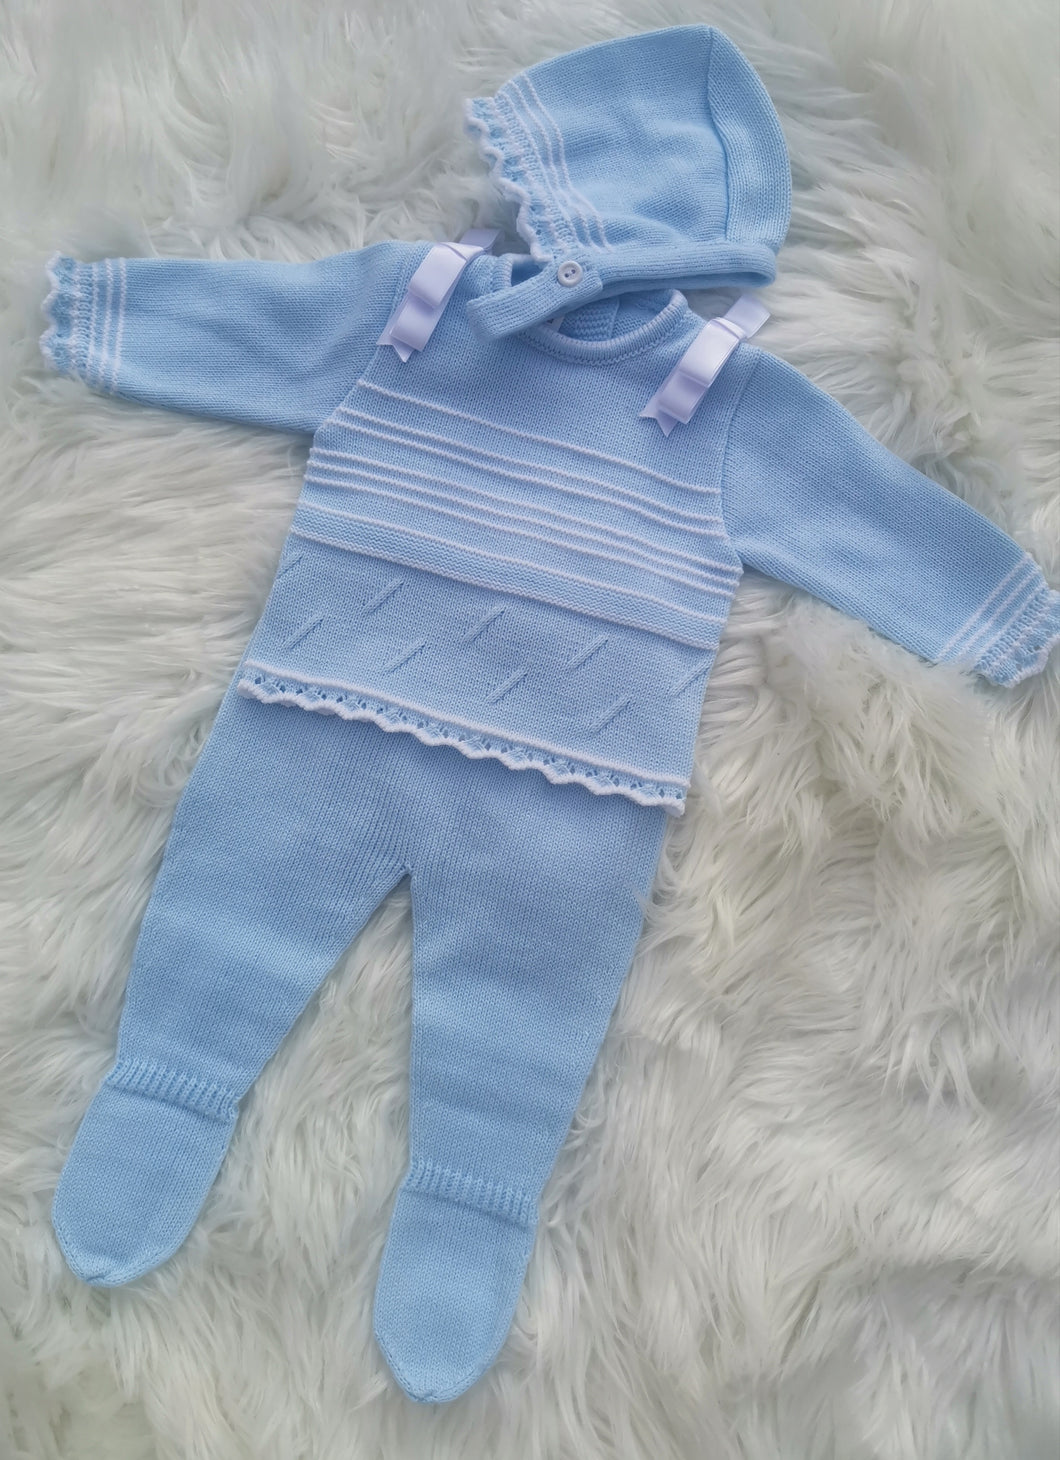 Spanish Knitted Three Piece Outfit With Bonnet - Baby Blue